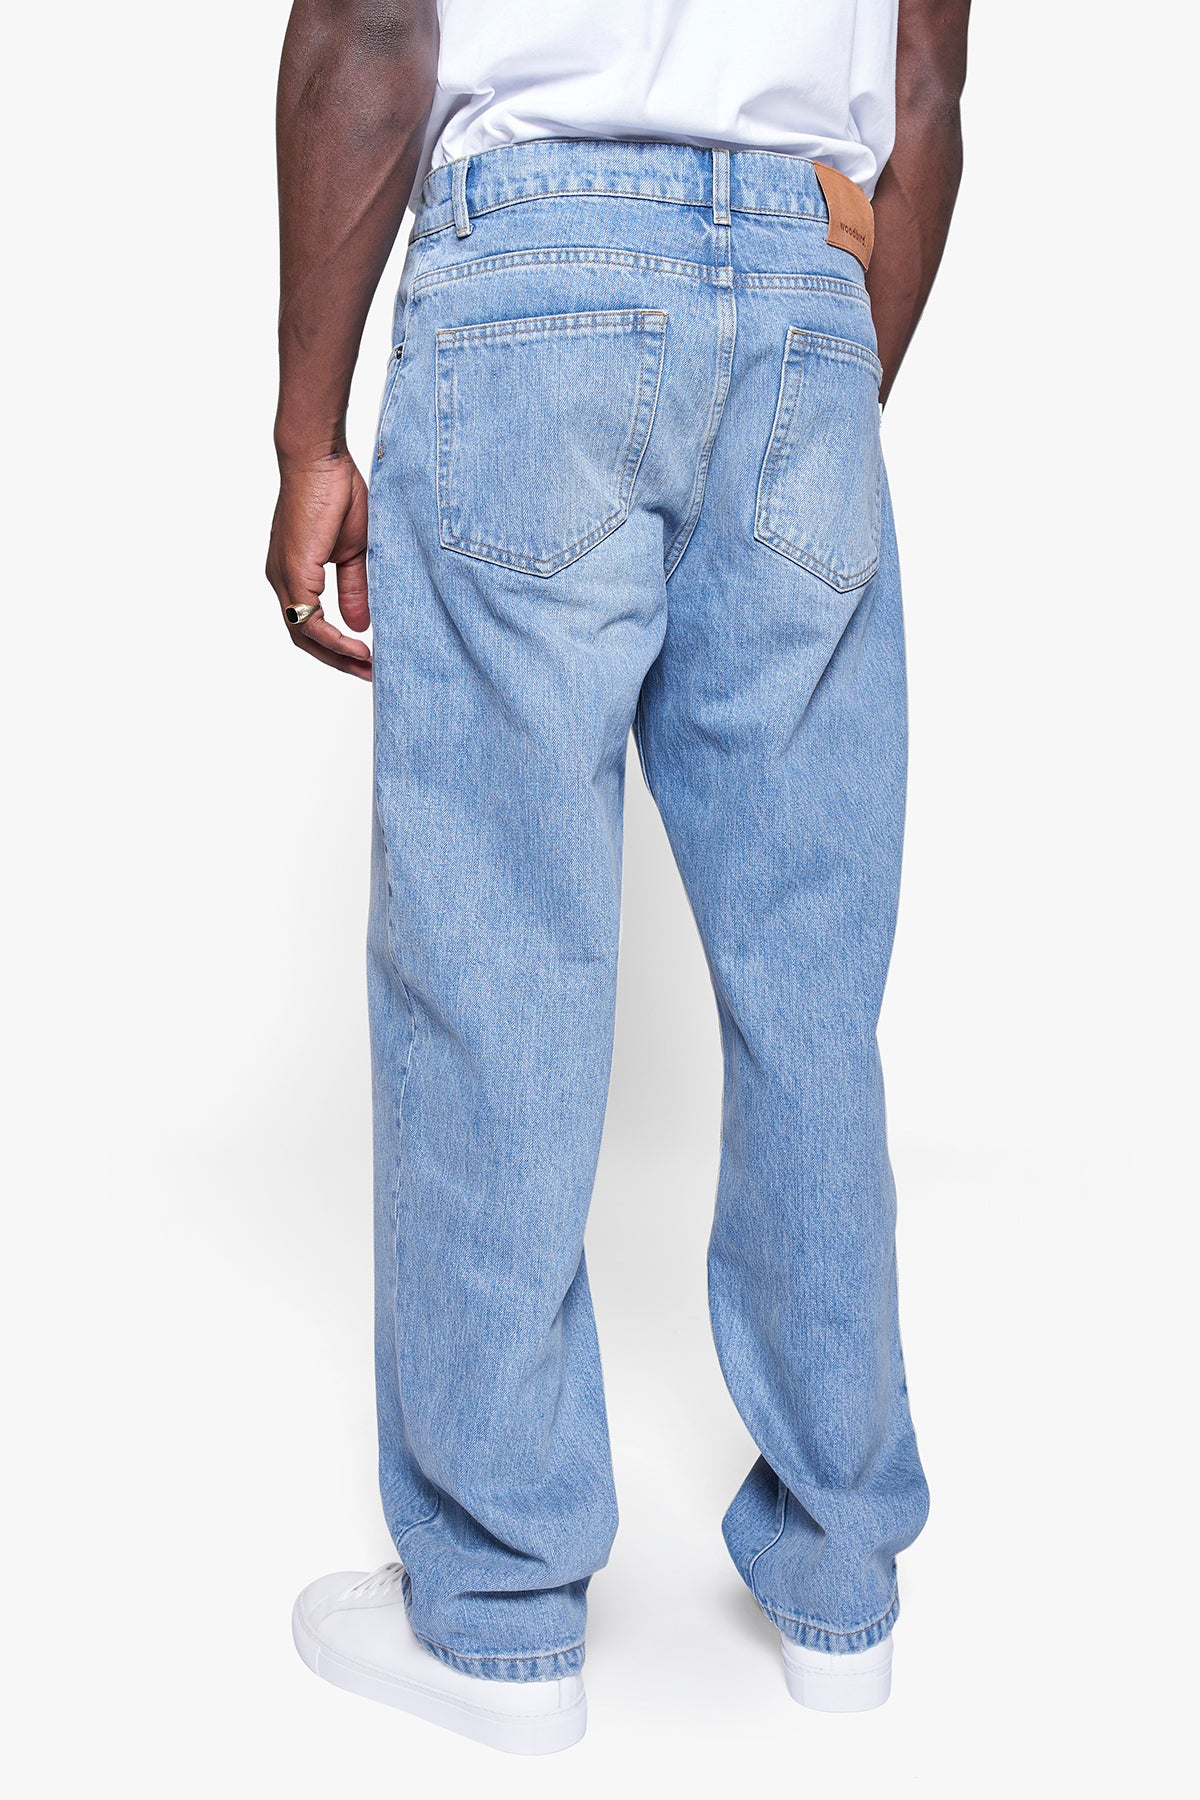 Leroy Sky Jeans - Light Blue